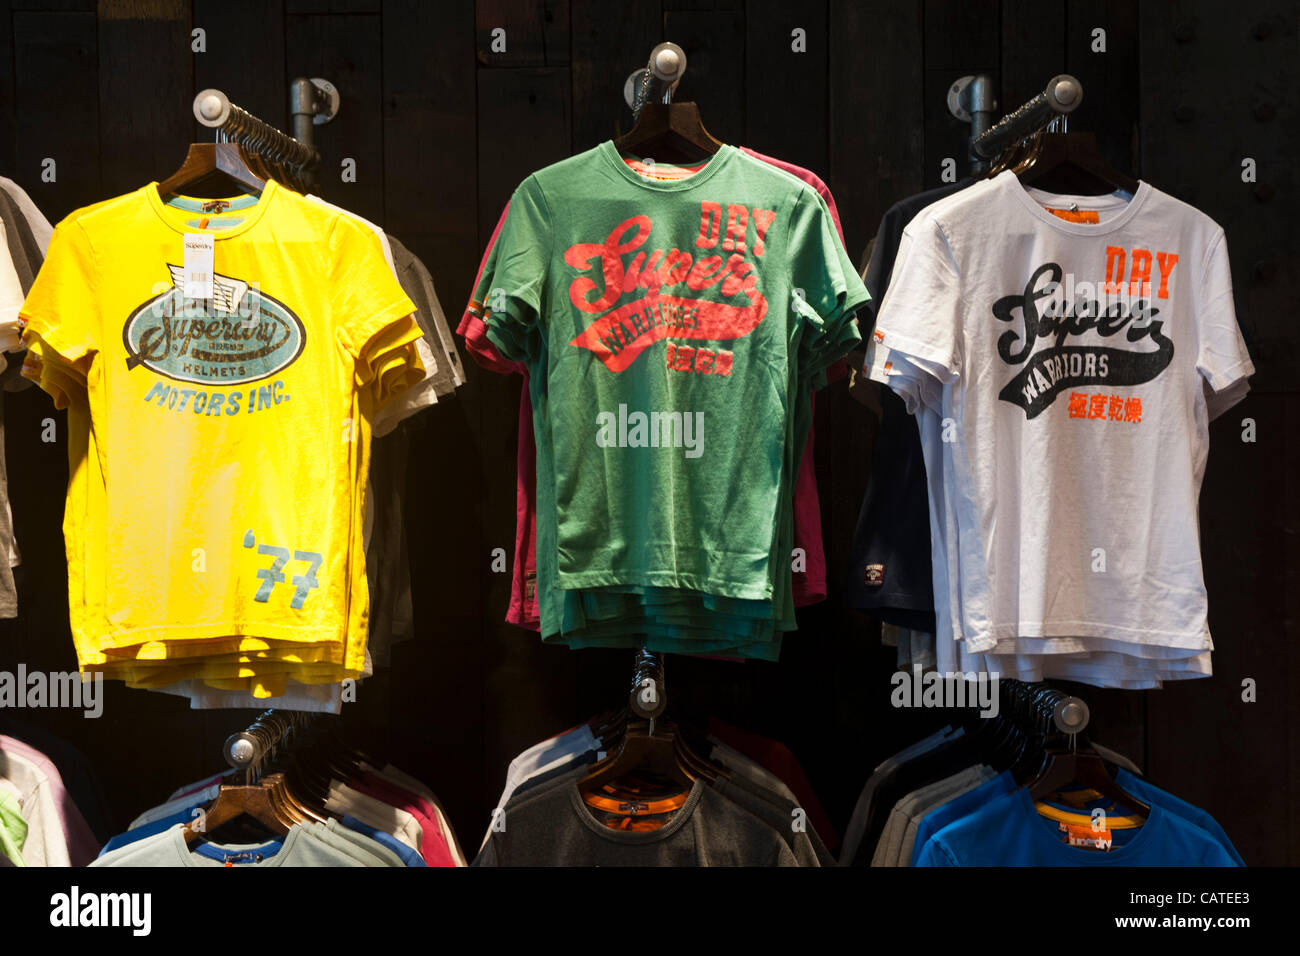 20/4/12, Superdry clothing store in Norwich, UK. Clothing chain SuperGroup stunned investors today by admitting - Stock Image